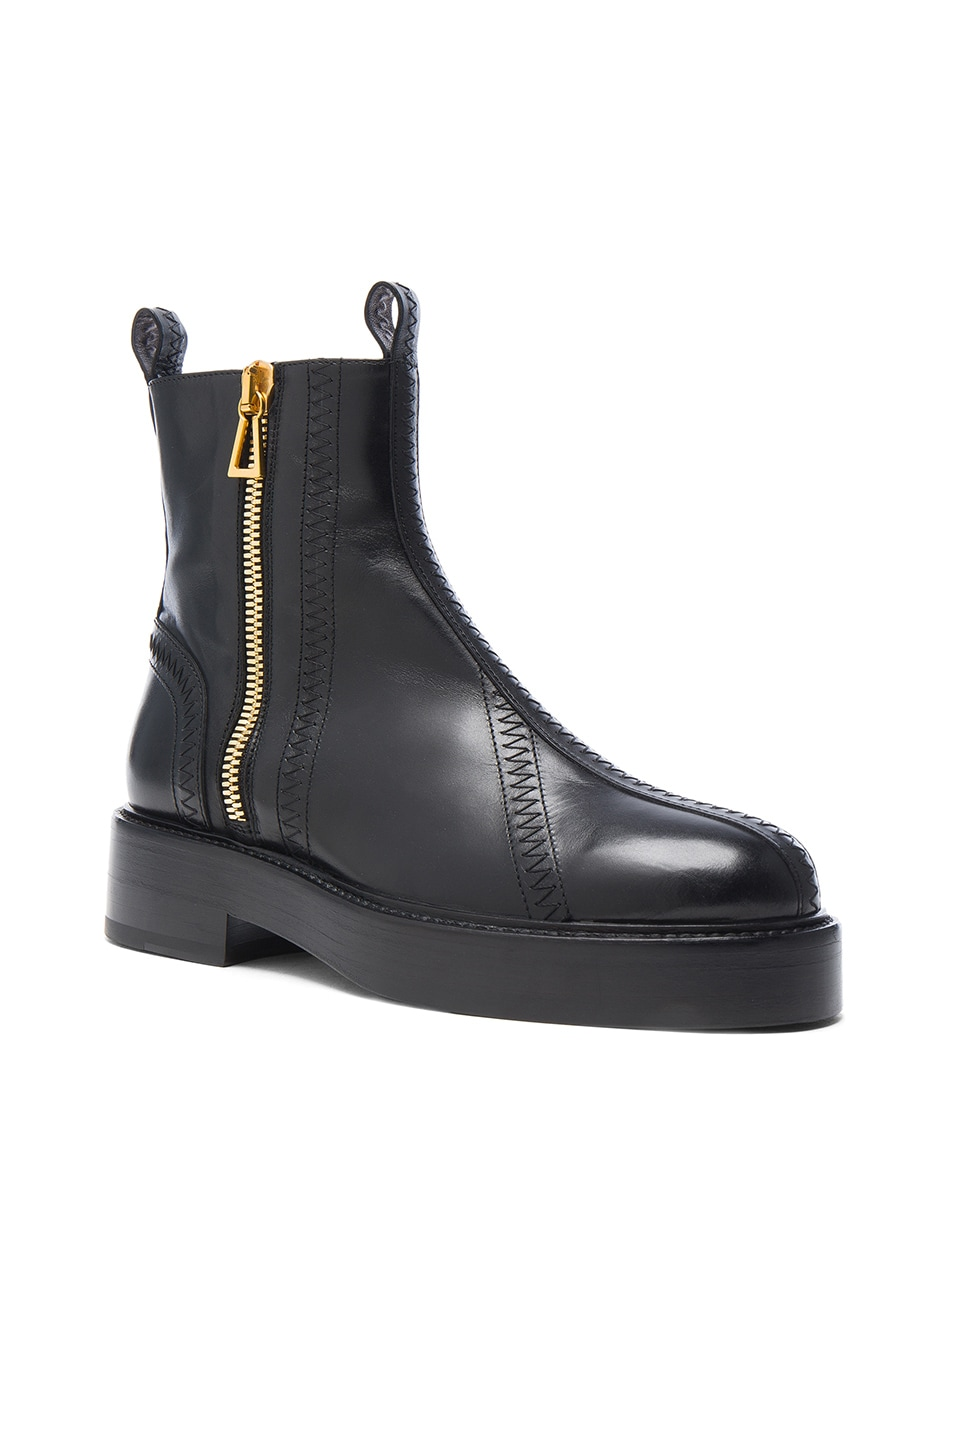 Image 2 of Ellery Leather Boots in Black & Gold